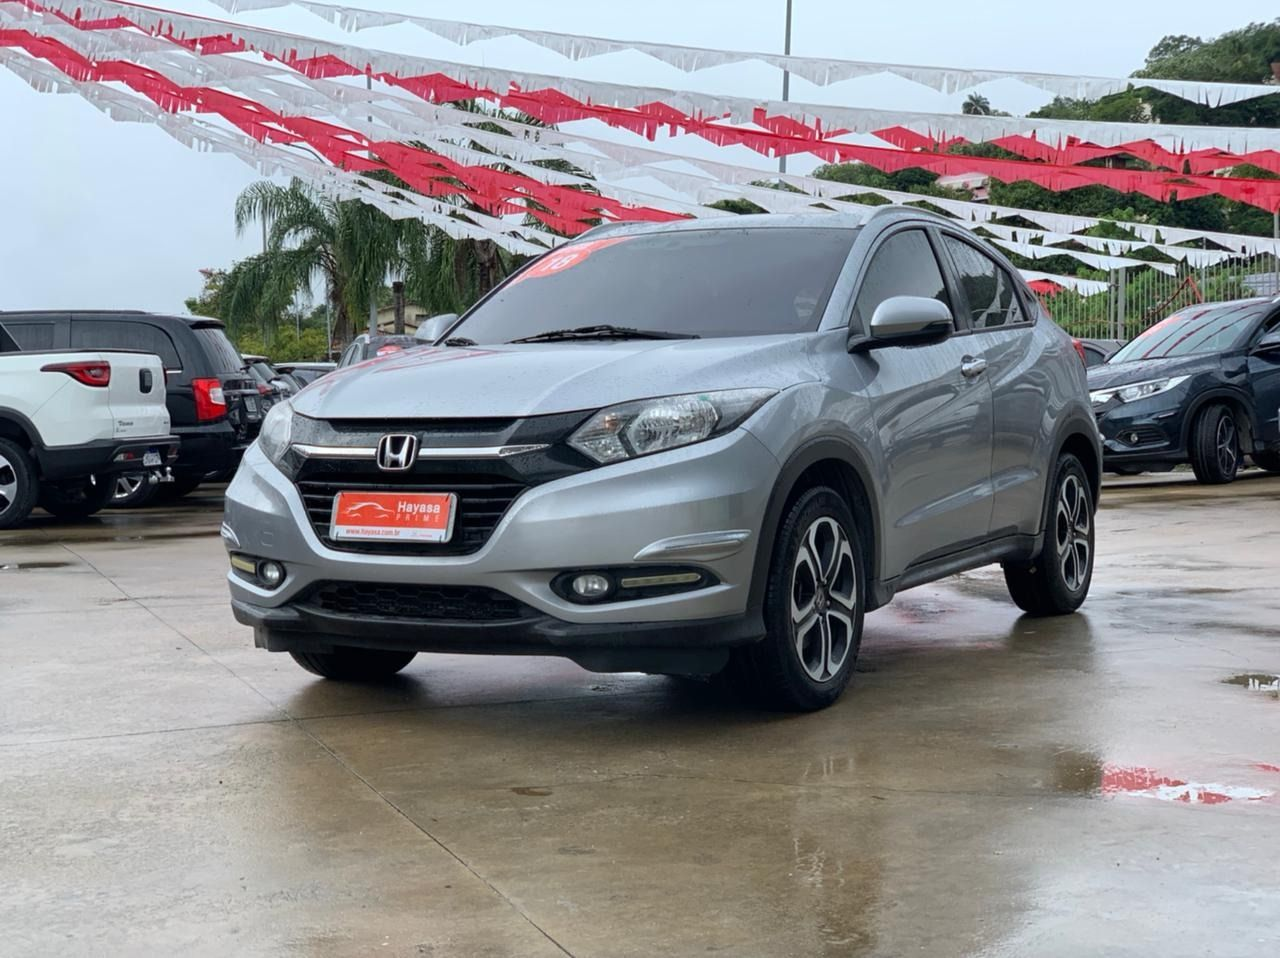 HR-V EX 1.8 16V SOHC i-VTEC FlexOne HR-V EX 1.8 16V SO...